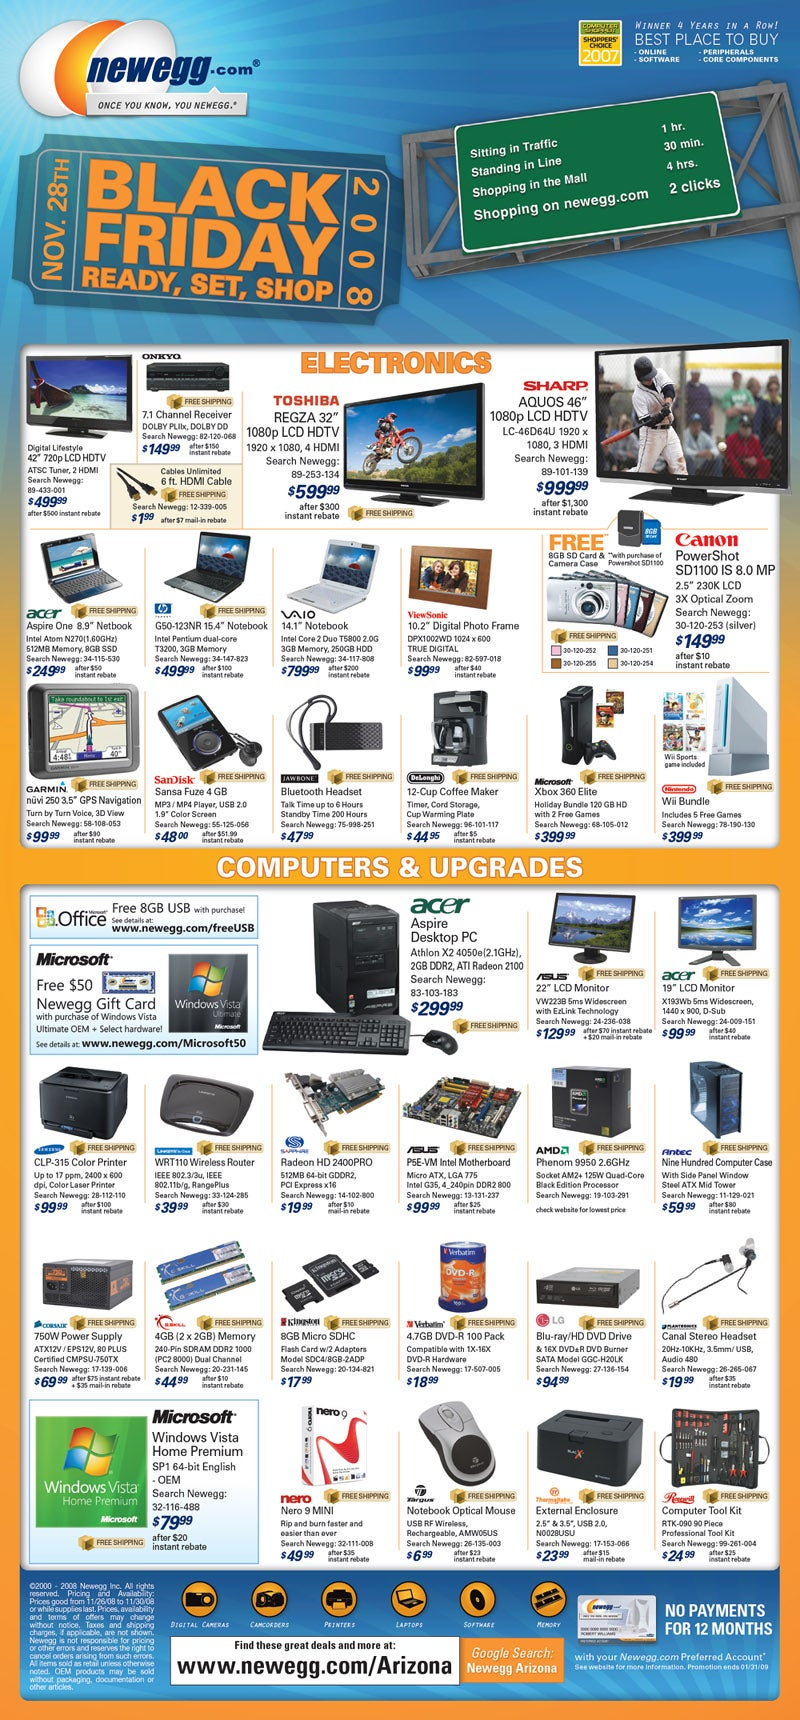 Newegg's Black Friday Deals Unveiled